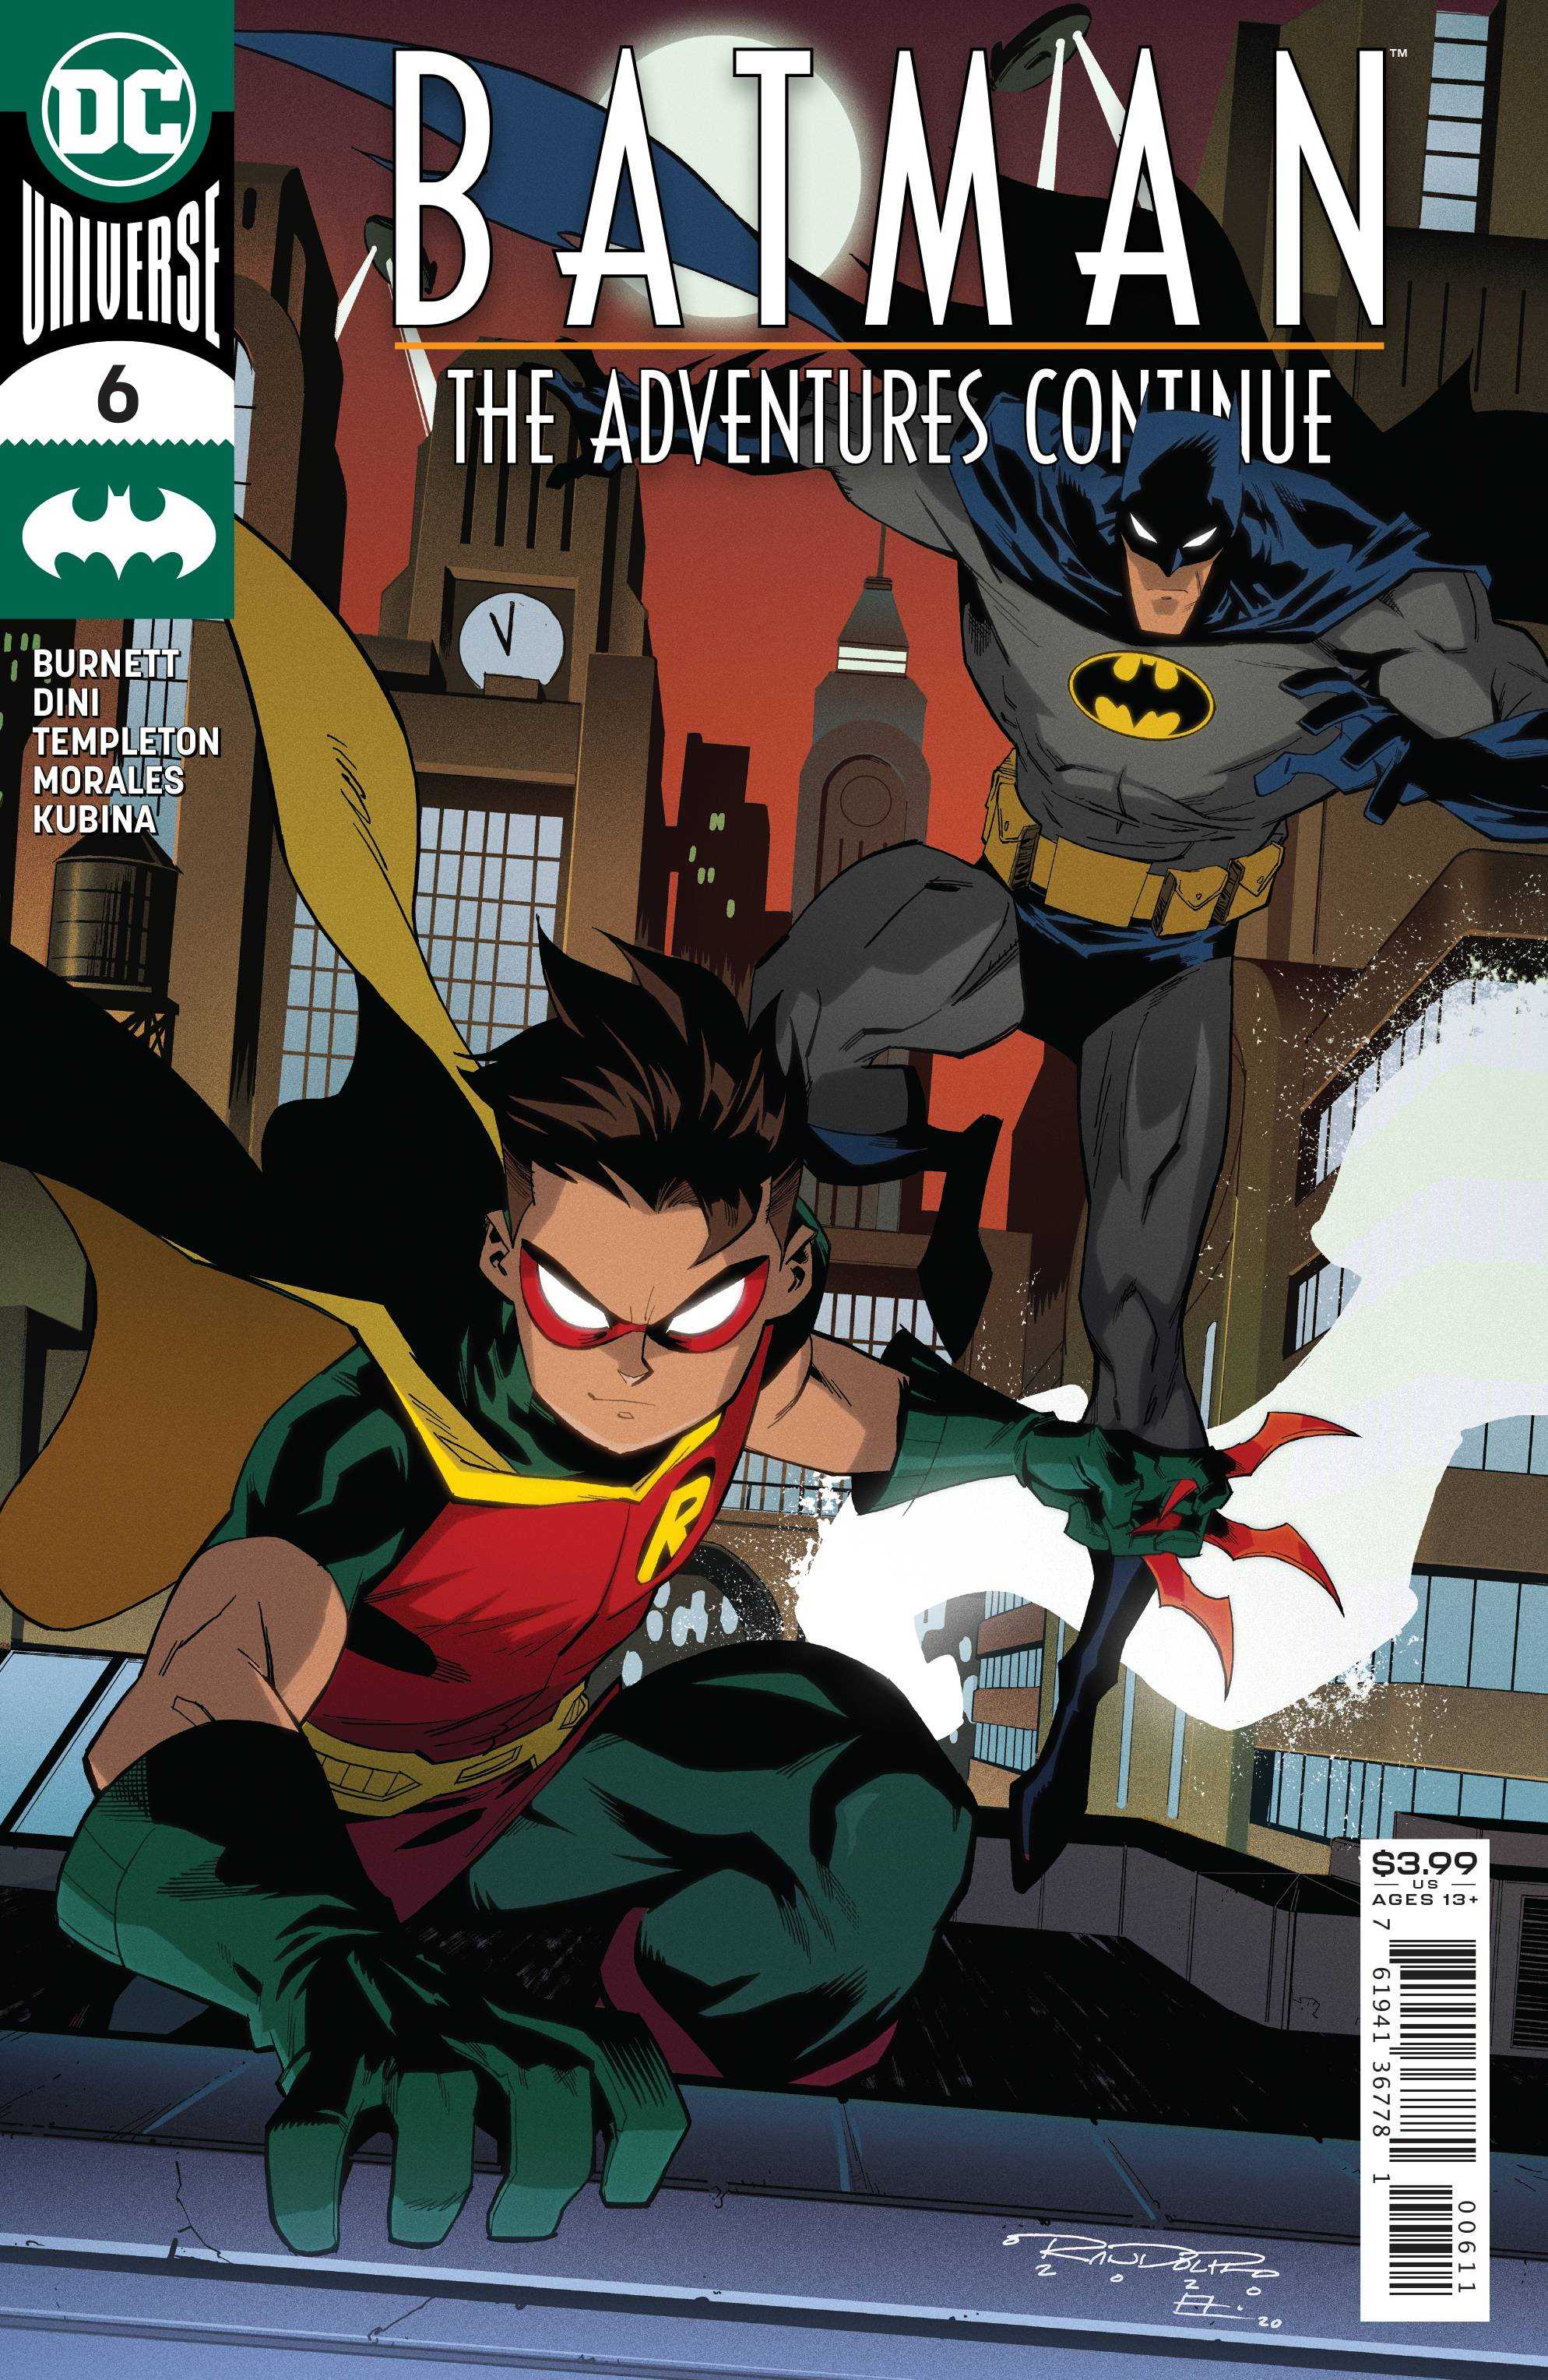 BATMAN THE ADVENTURES CONTINUE #6 (OF 6)